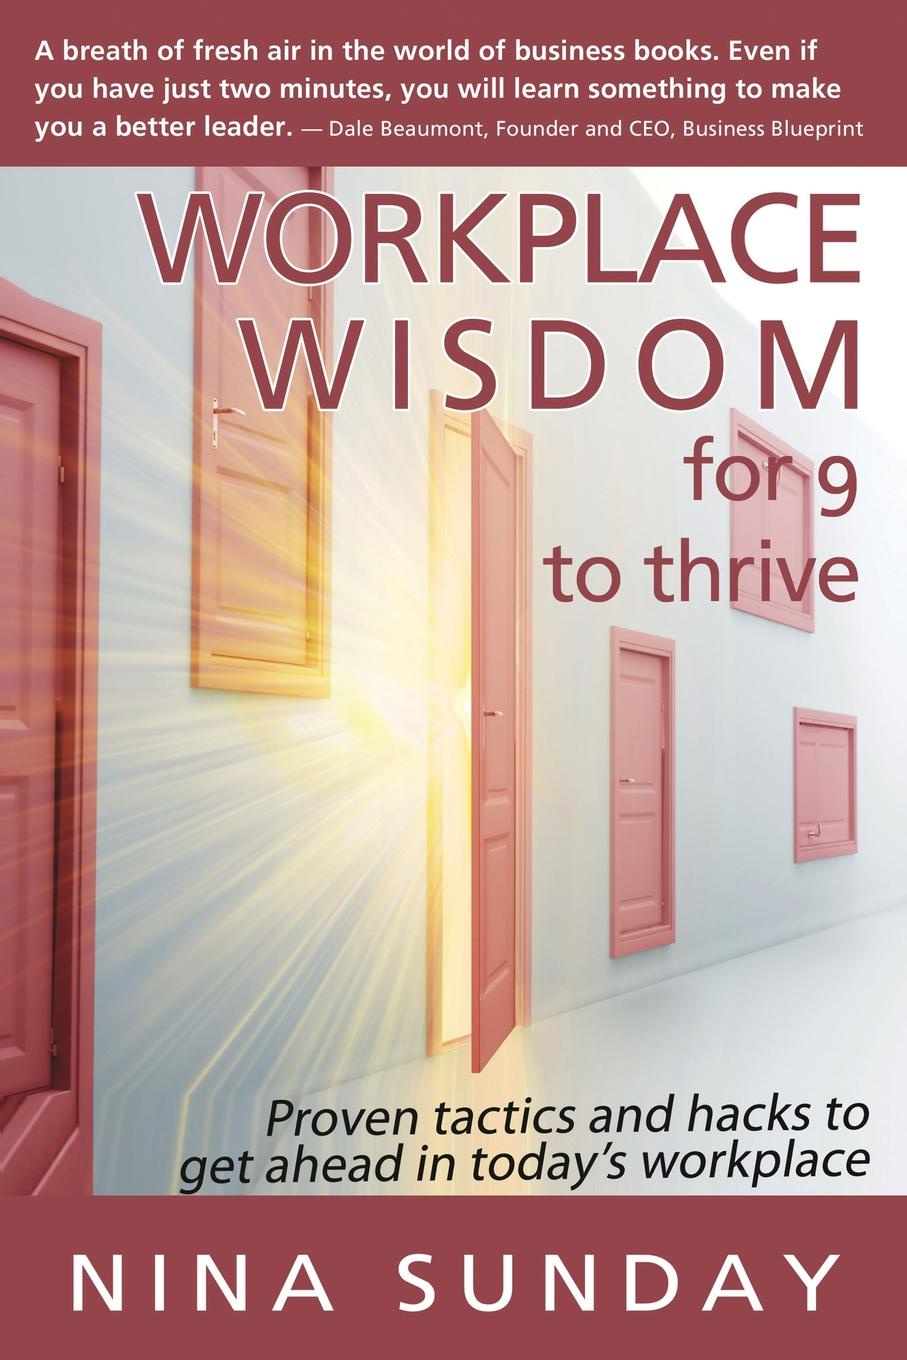 Nina Sunday Workplace Wisdom for 9 to thrive. Proven tactics and hacks to get ahead in today.s workplace betty liu work smarts what ceos say you need to know to get ahead